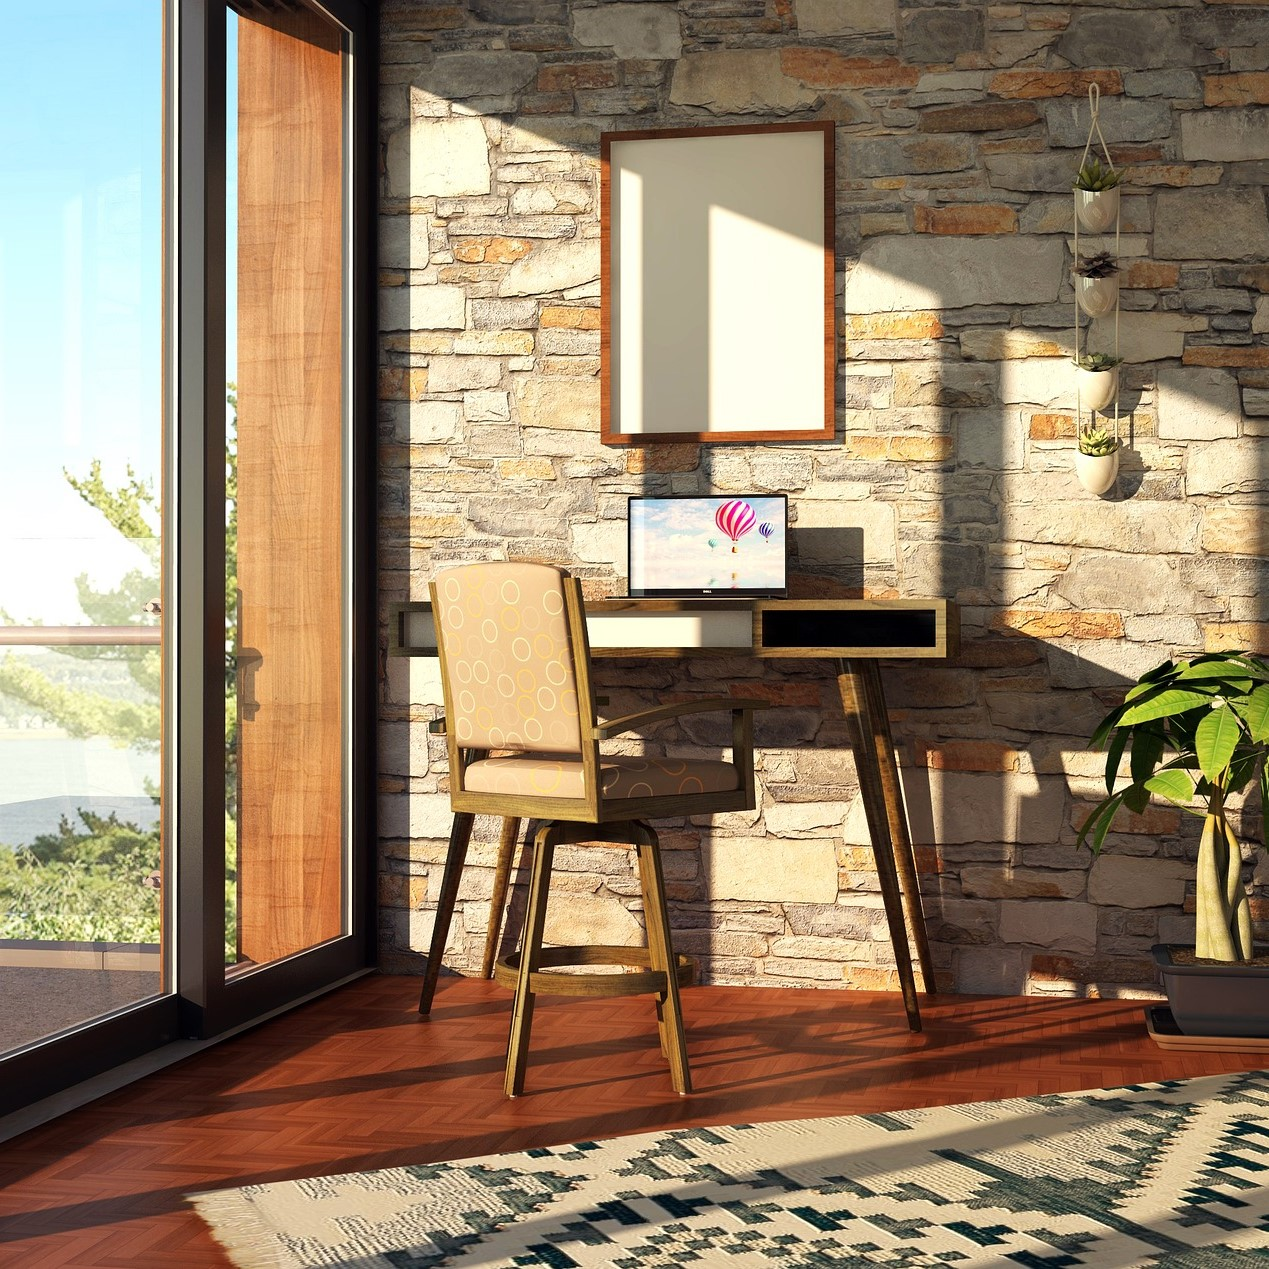 Move to freelancing improves quality of life